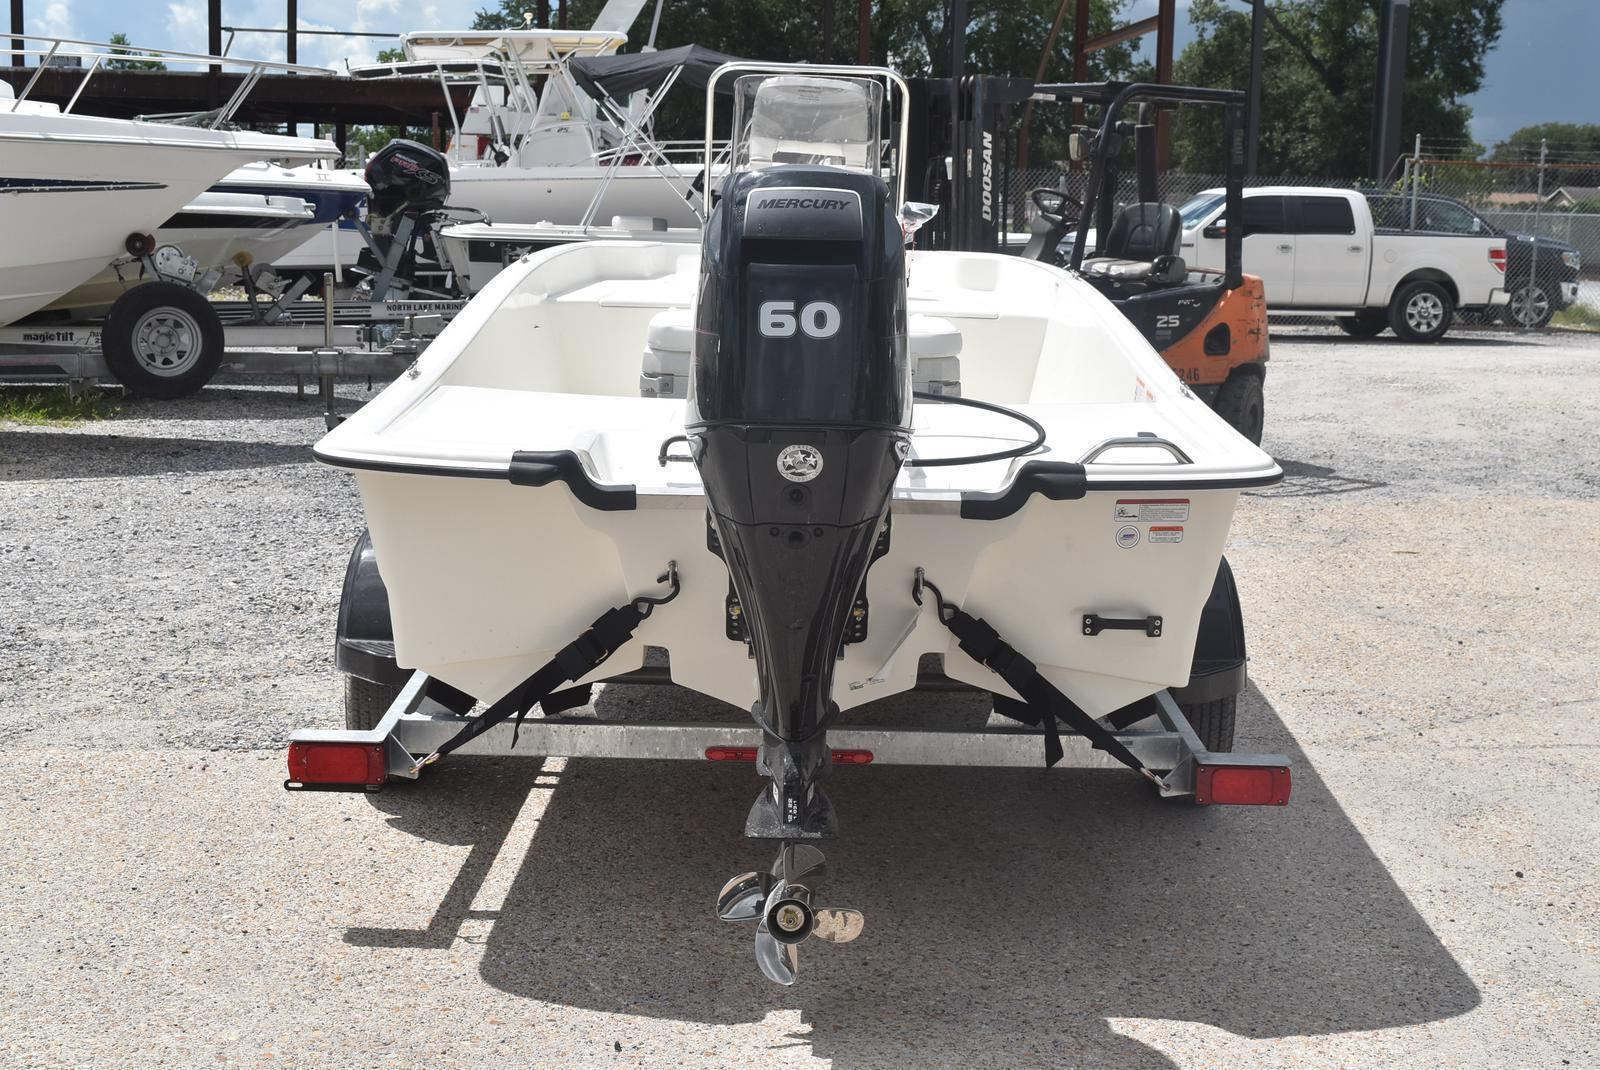 2020 Mako boat for sale, model of the boat is Pro Skiff 17, 75 ELPT & Image # 550 of 702